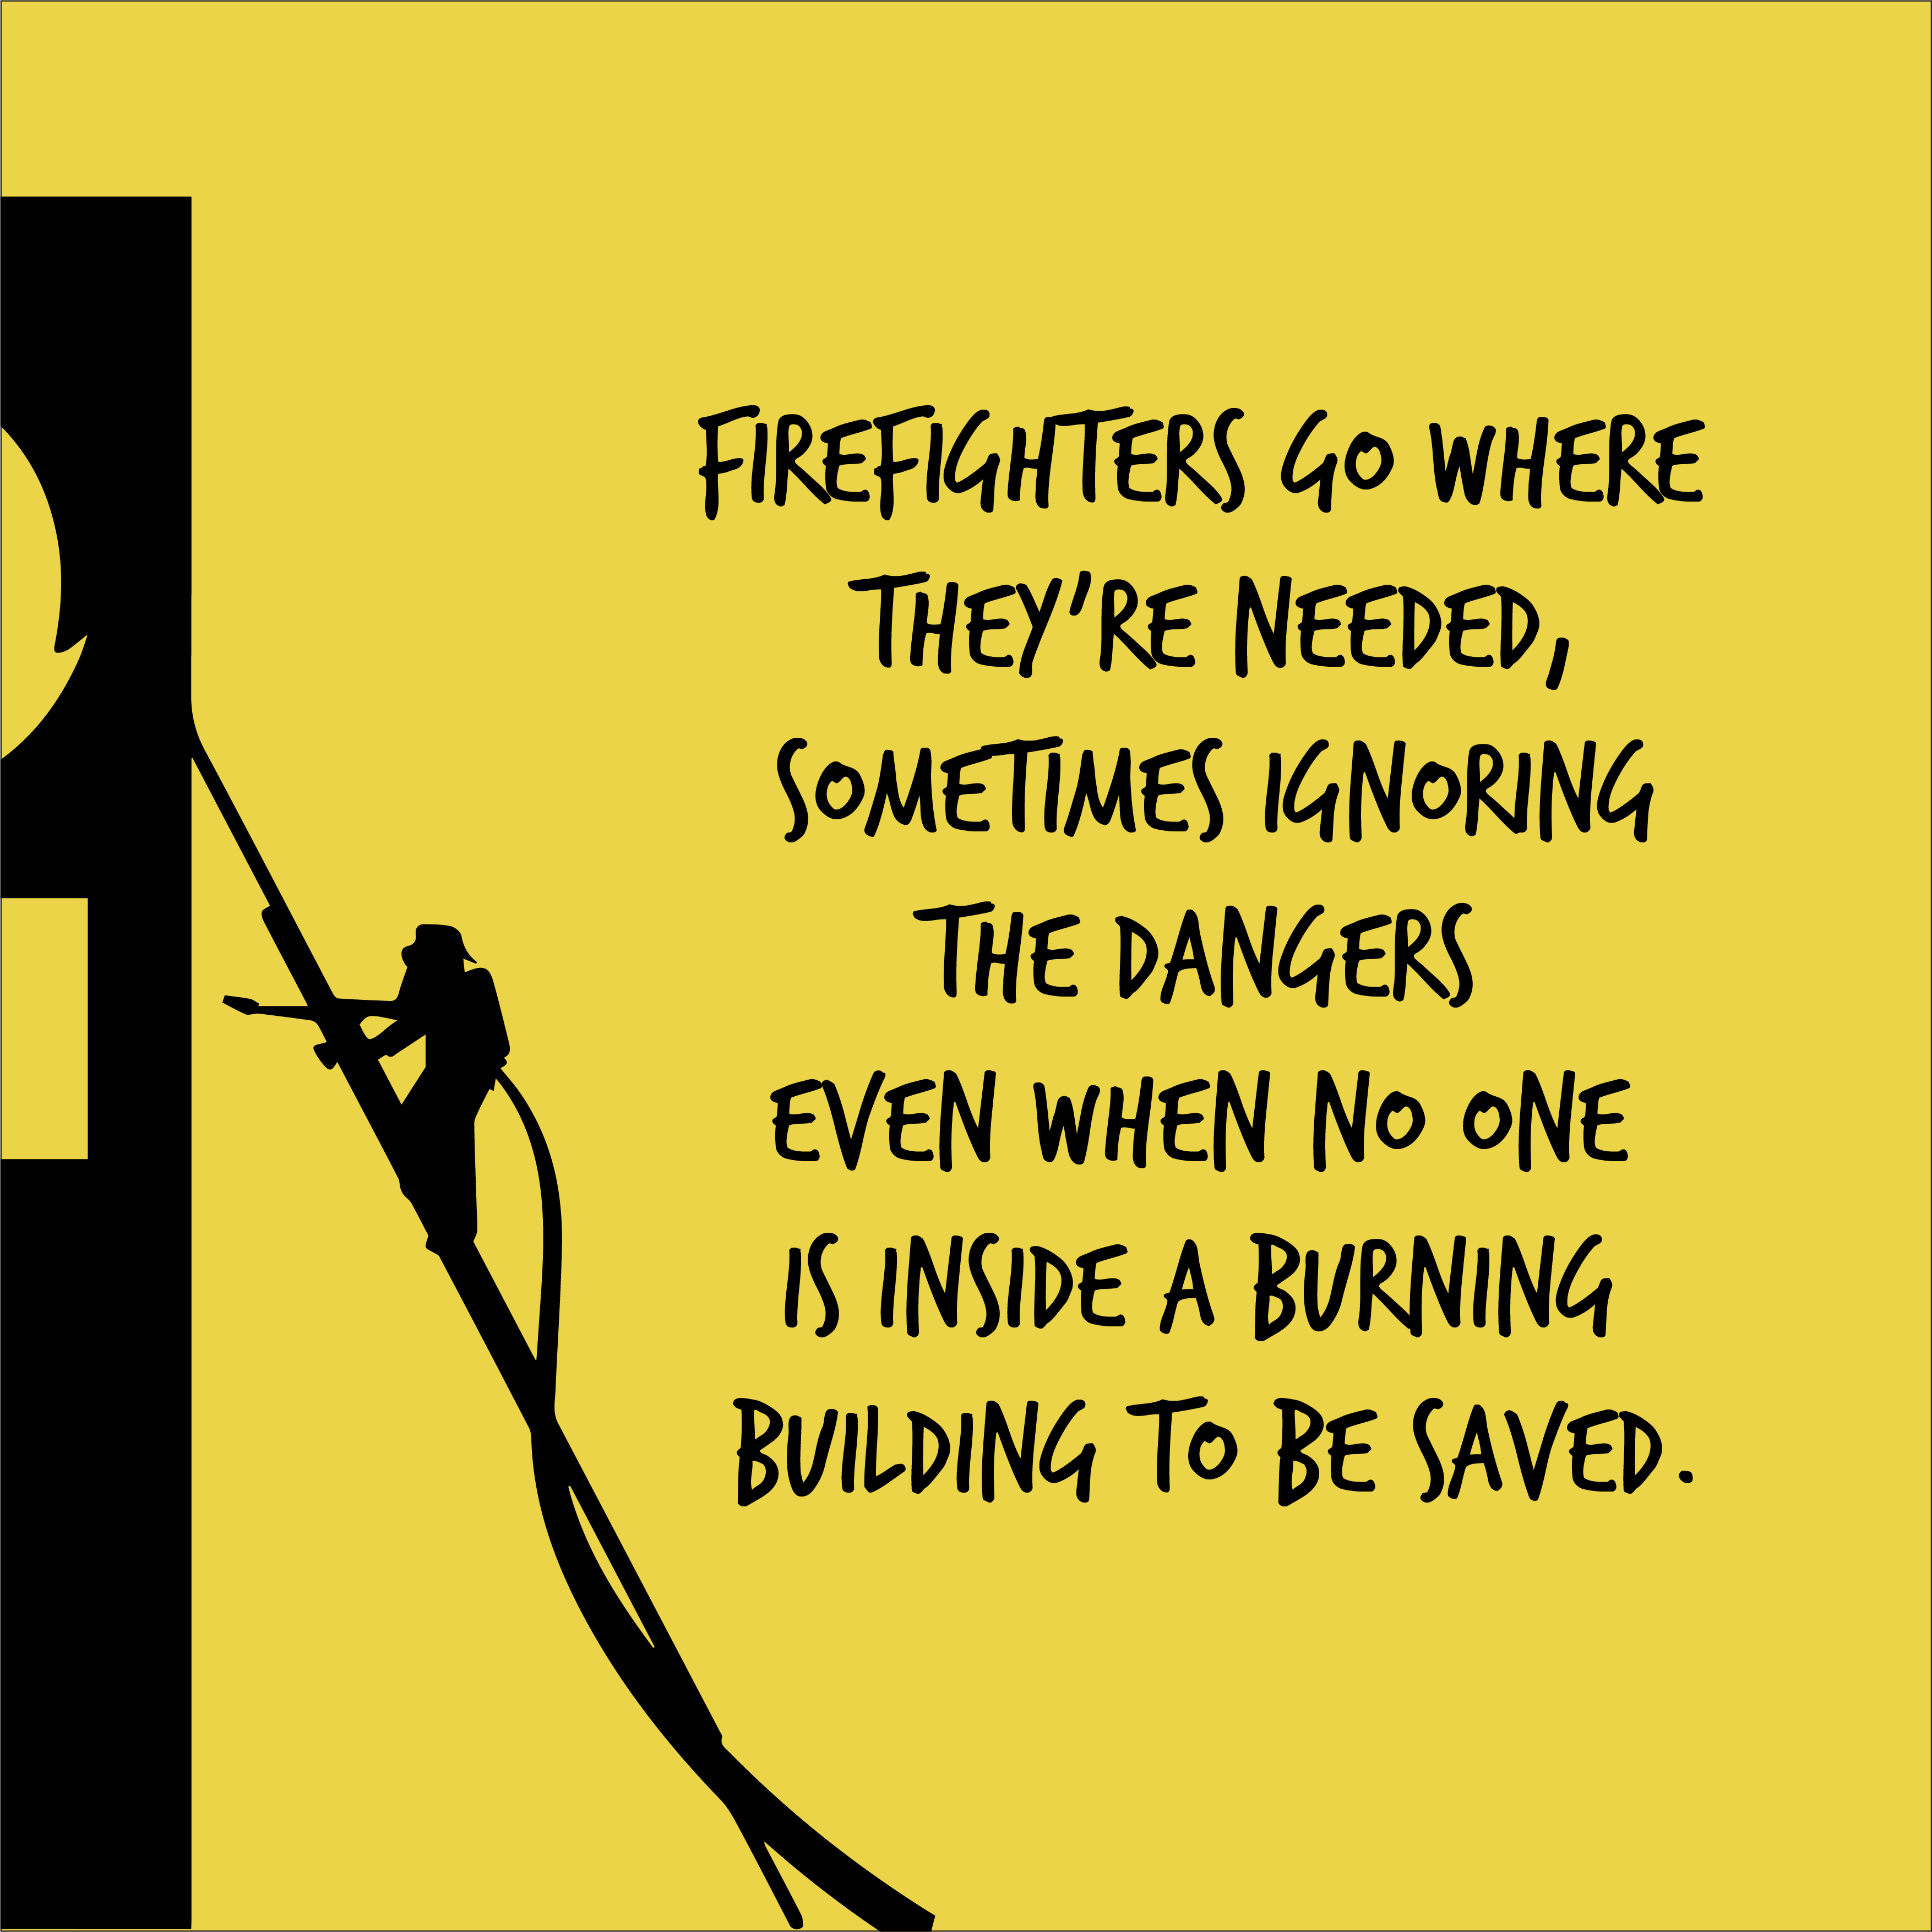 firefighter-quotes-04